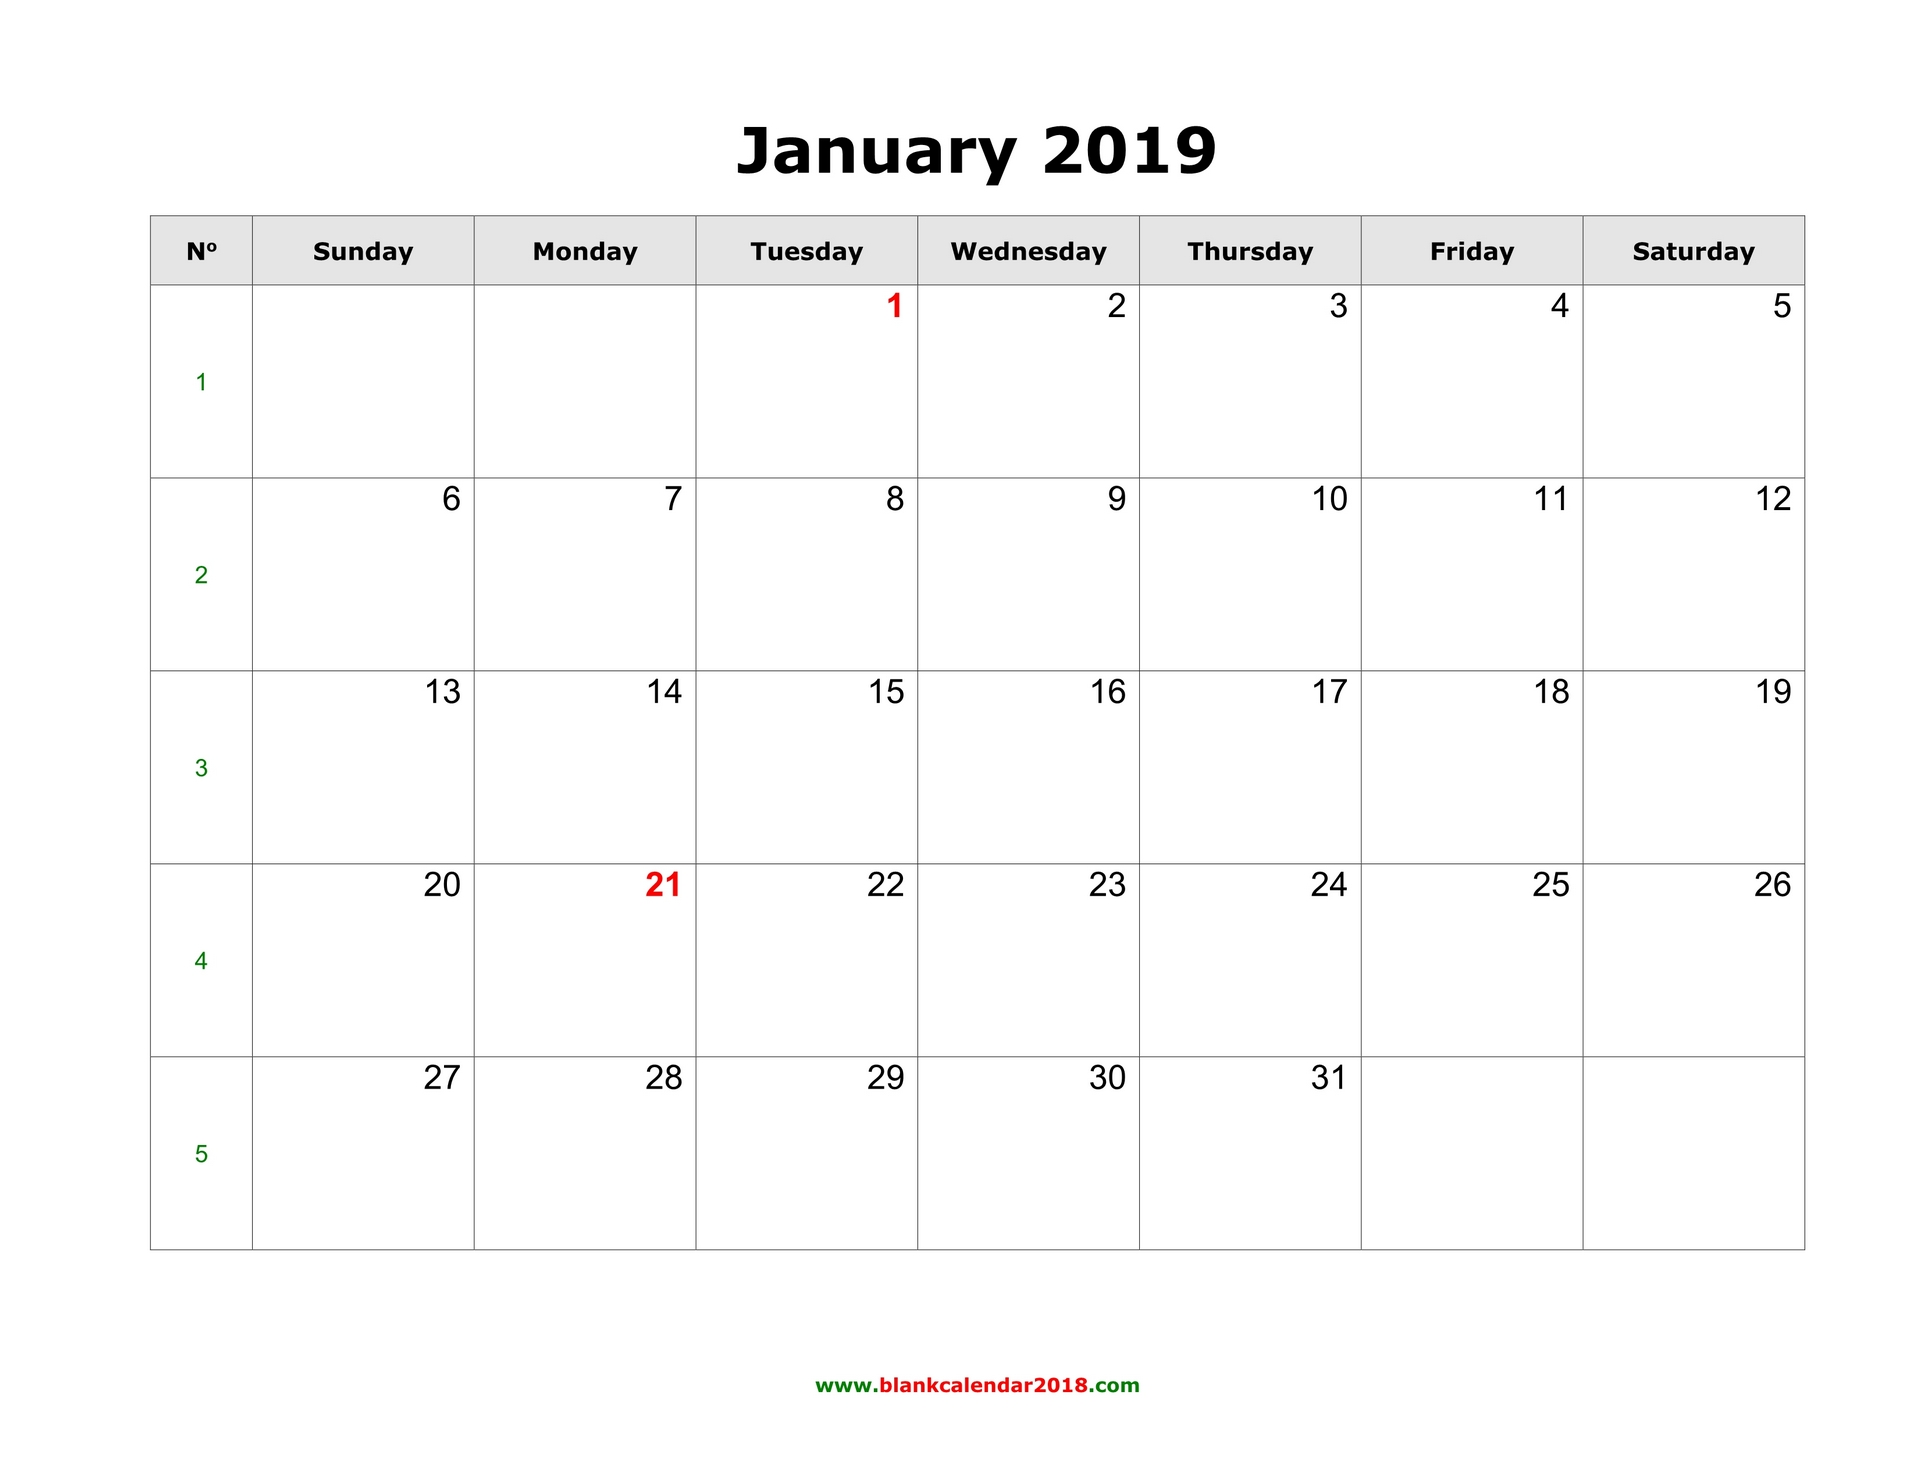 2019 January Calendar Free Printable Blank Calendar for January 2019